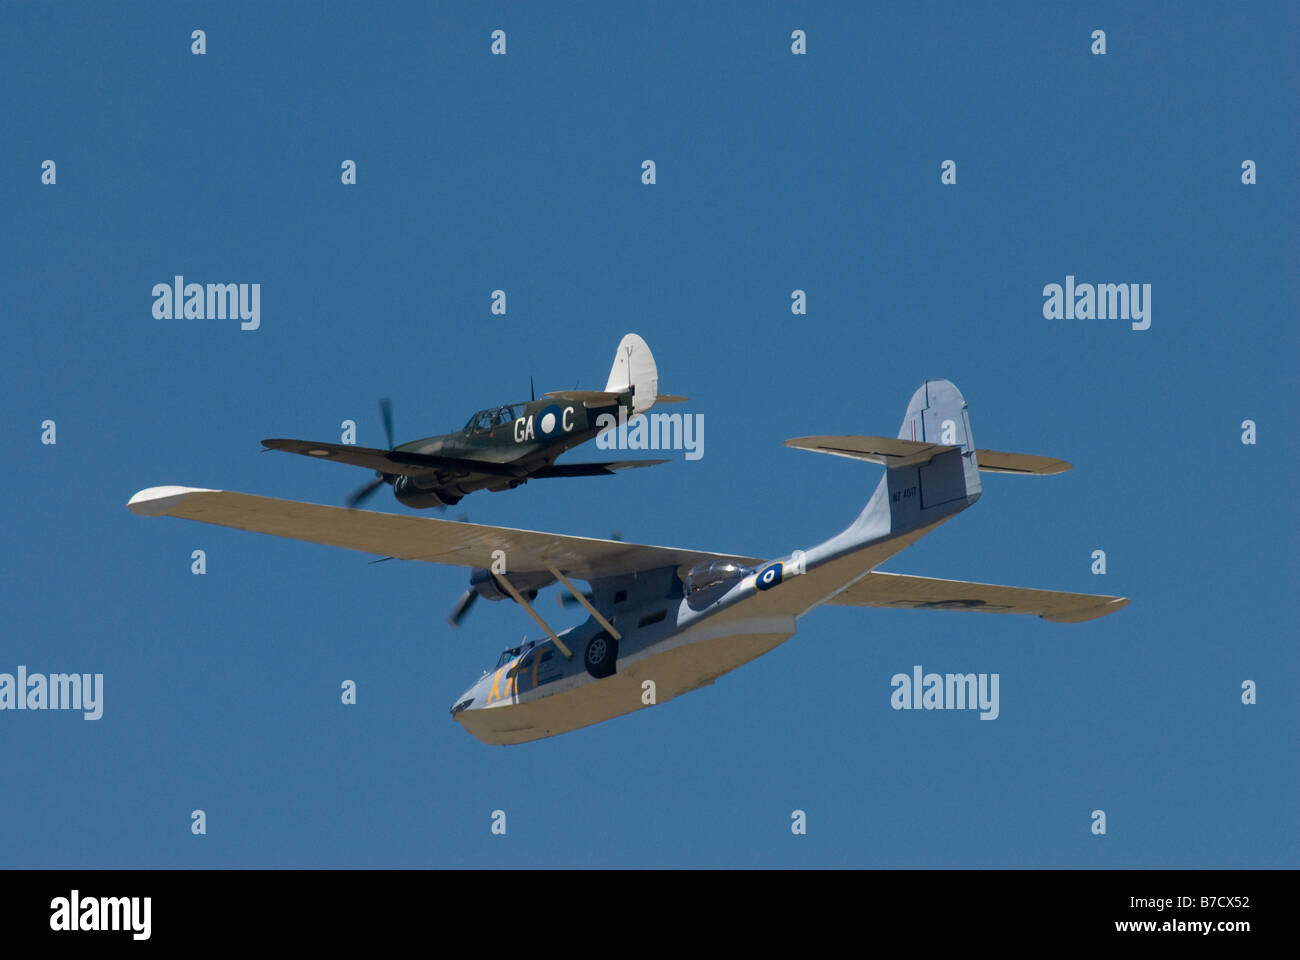 PBY-5A Catalina amphibious flying boat with Curtiss P40 Kittyhawk fighter escort - Stock Image